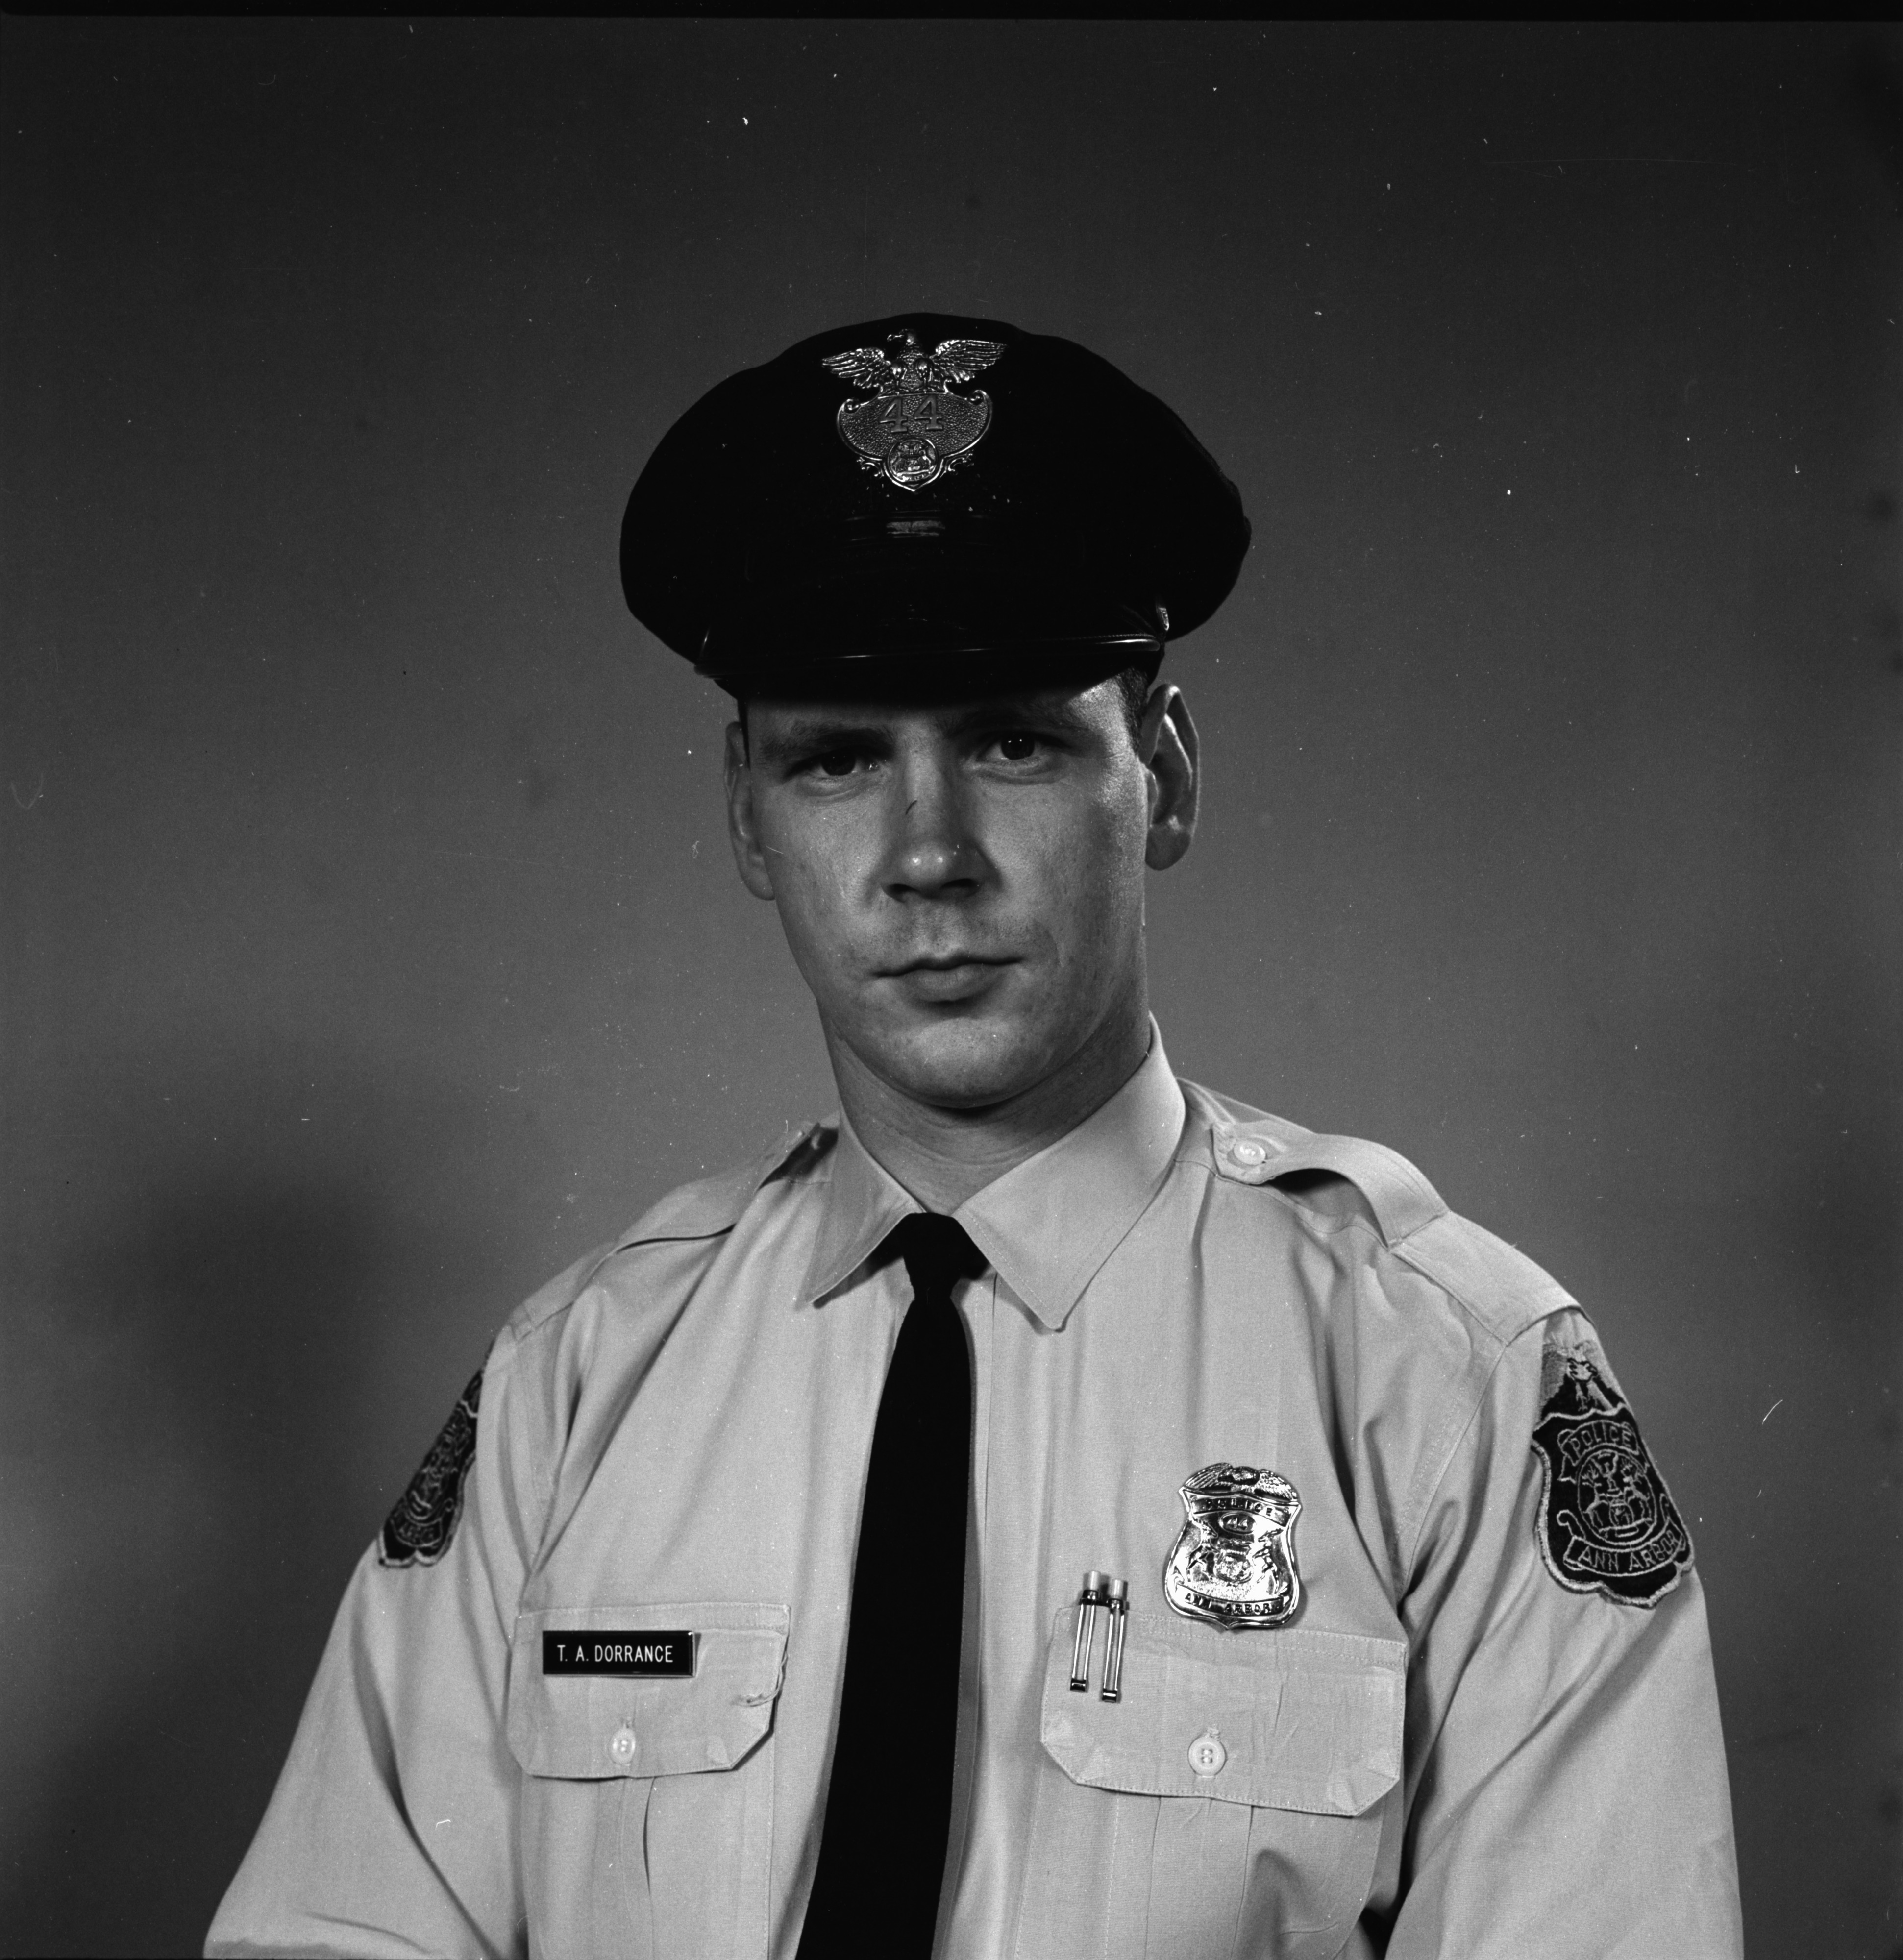 Ann Arbor Police Department Patrolman Thomas A. Dorrance, July 1965 image